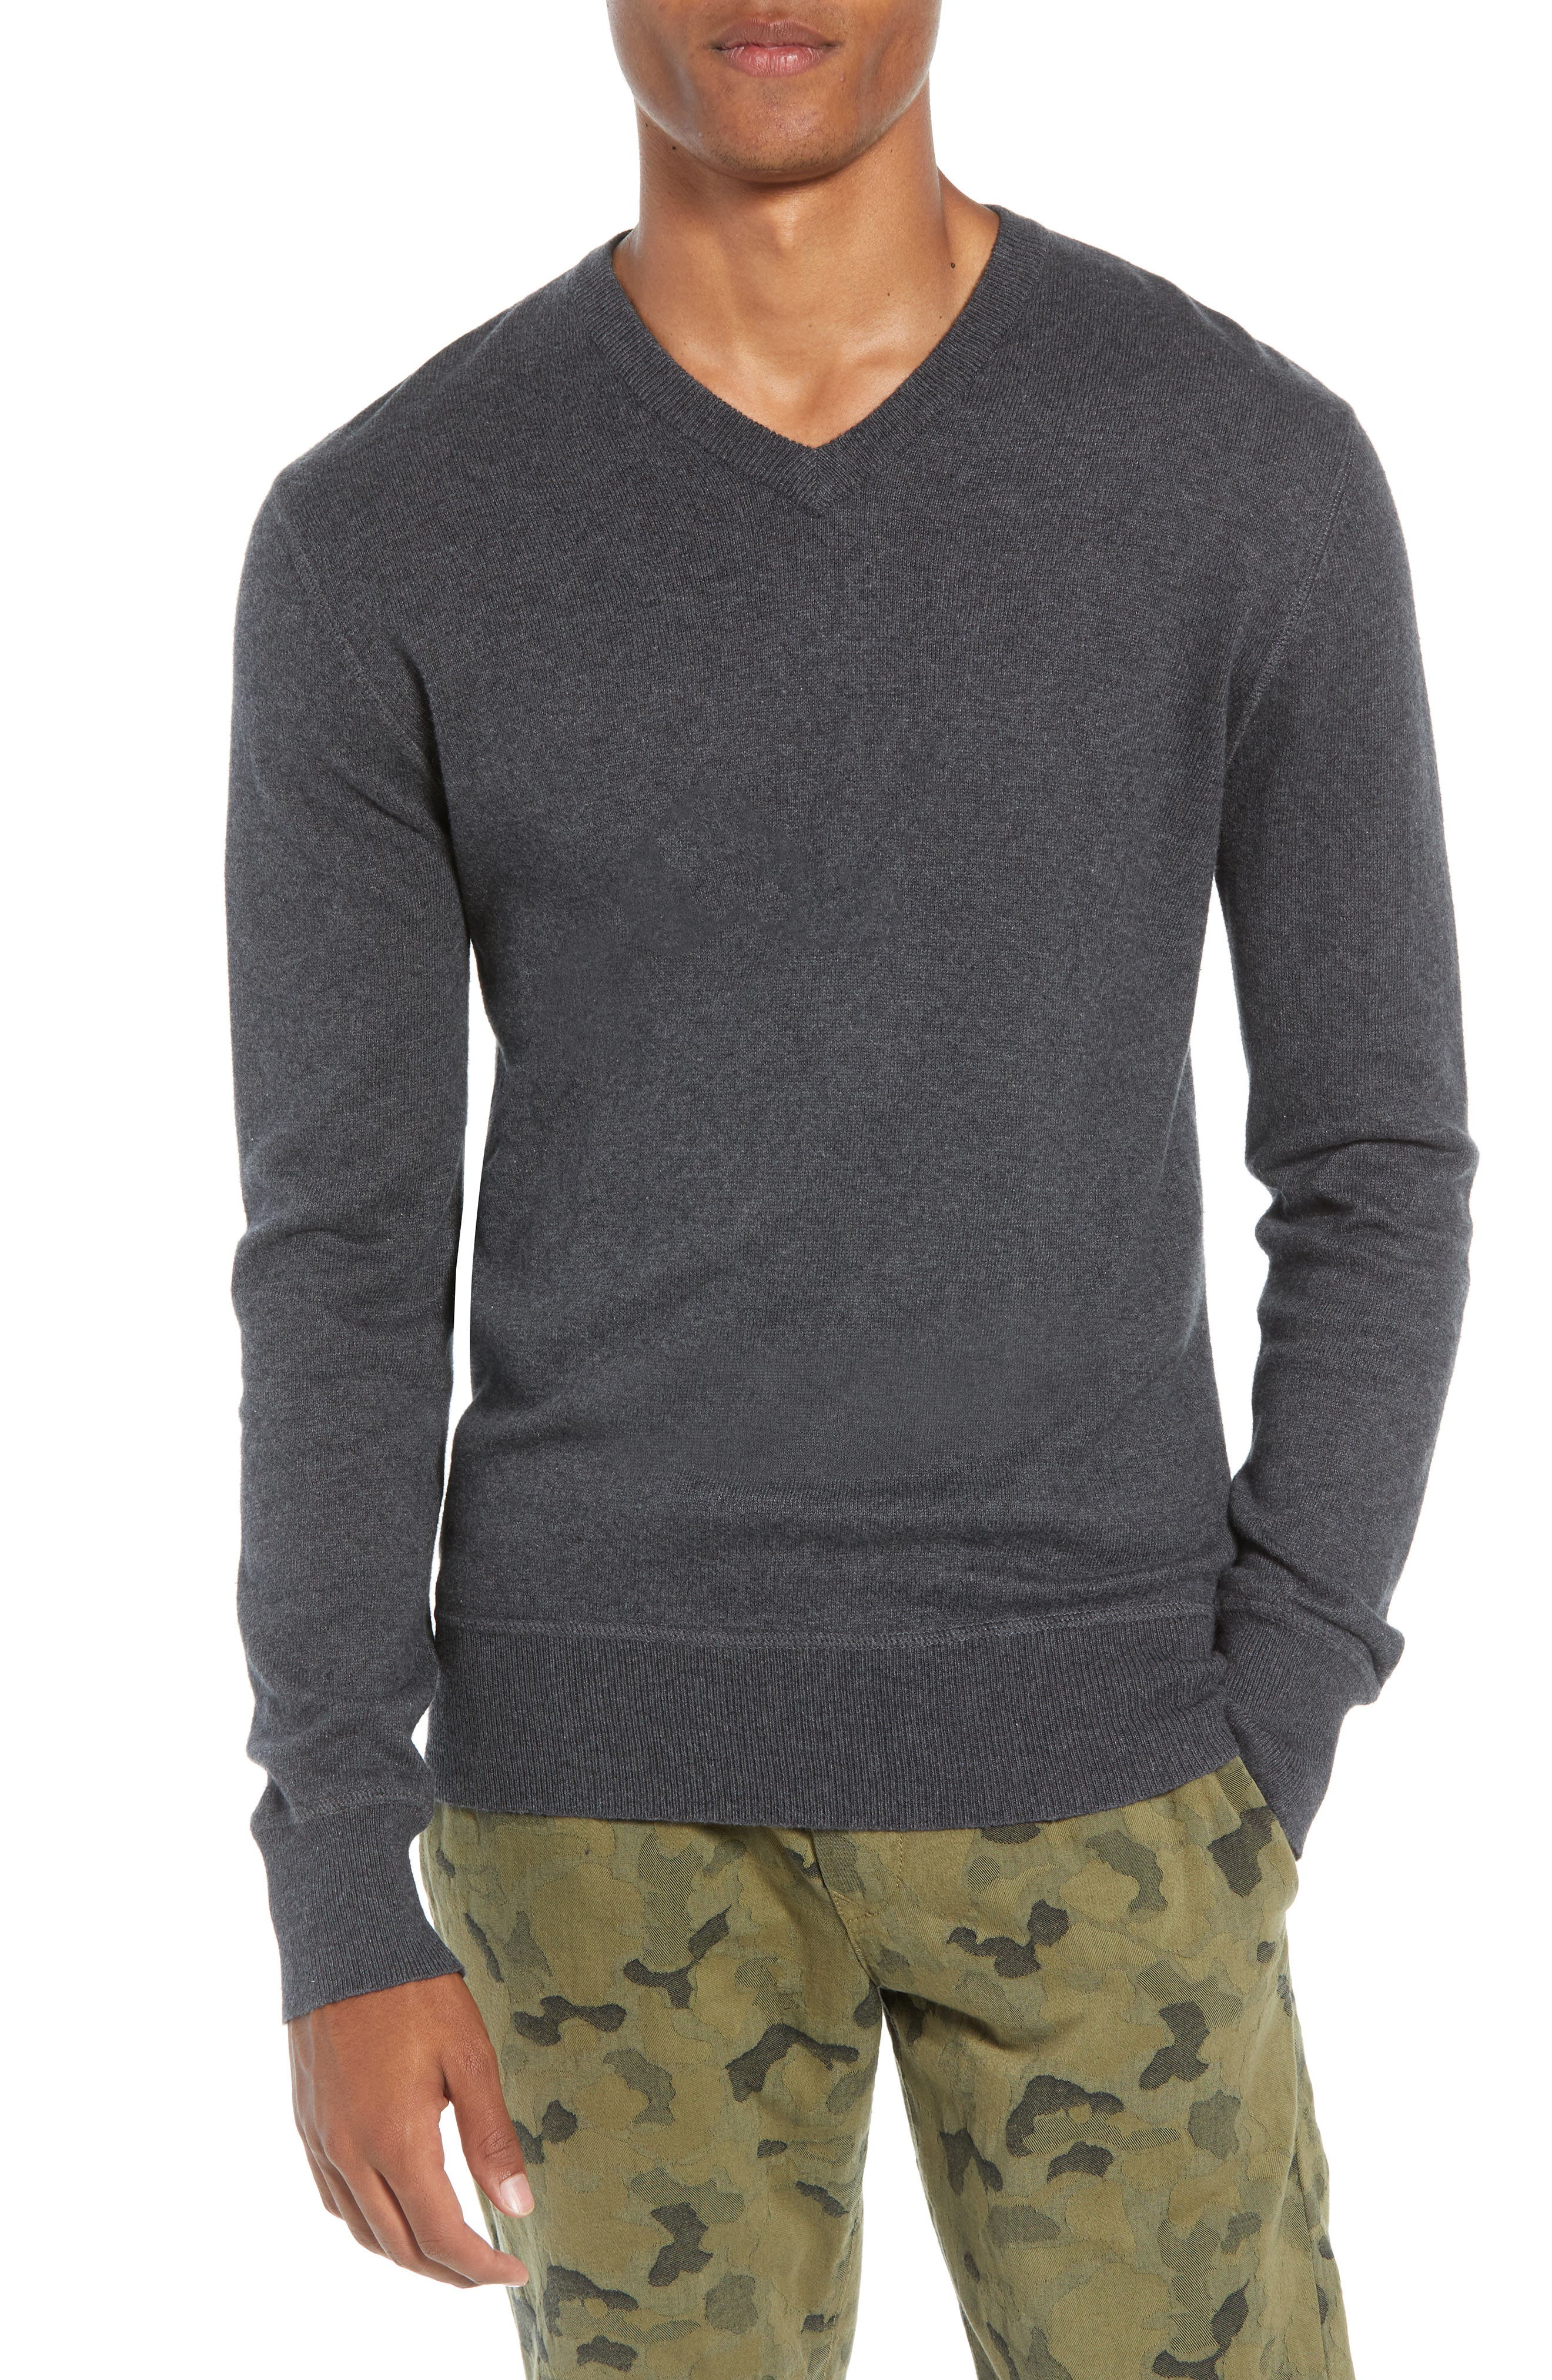 Tournament Slim Fit V-Neck Sweater,                             Main thumbnail 1, color,                             HEATHER CHARCOAL